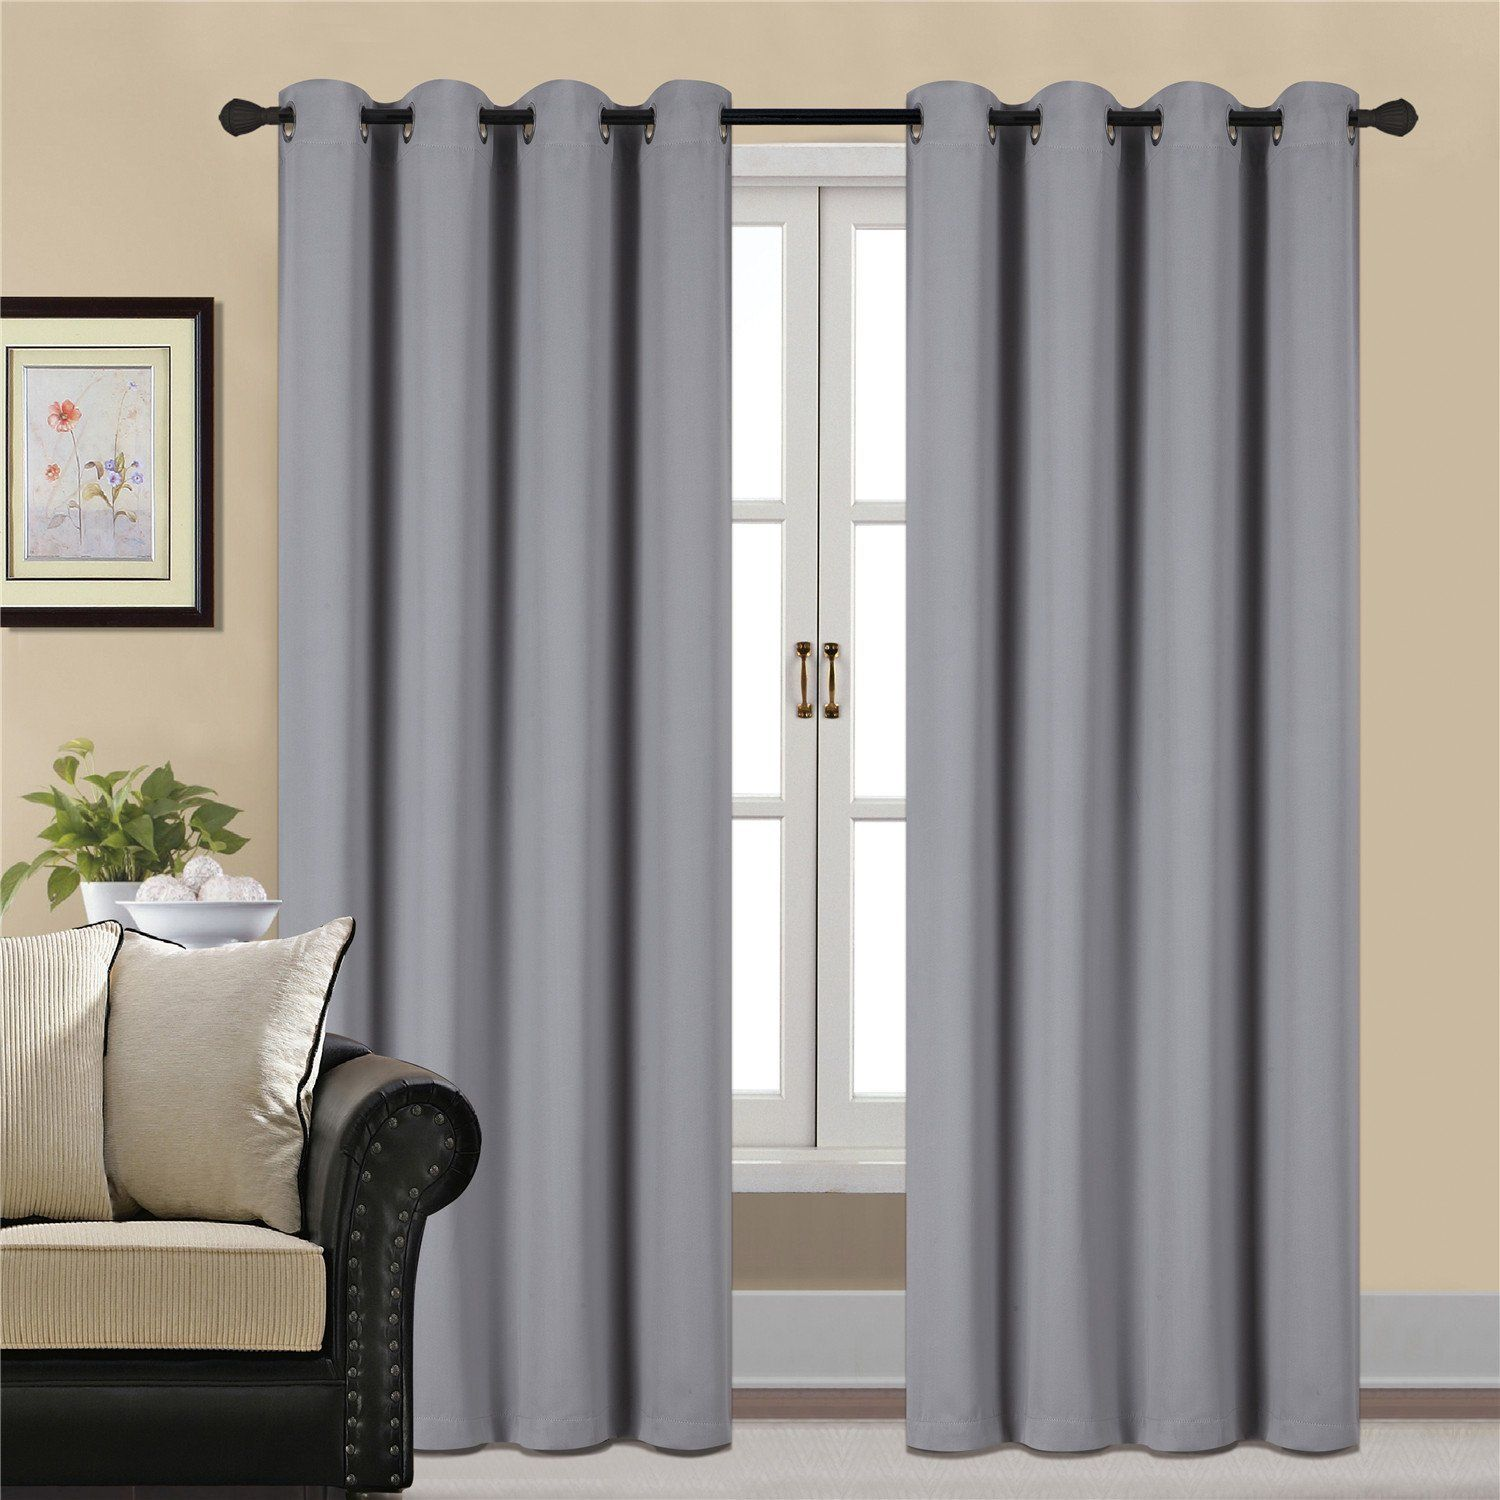 grommet thermal curtain elegance panel click insulated to expand curtains p